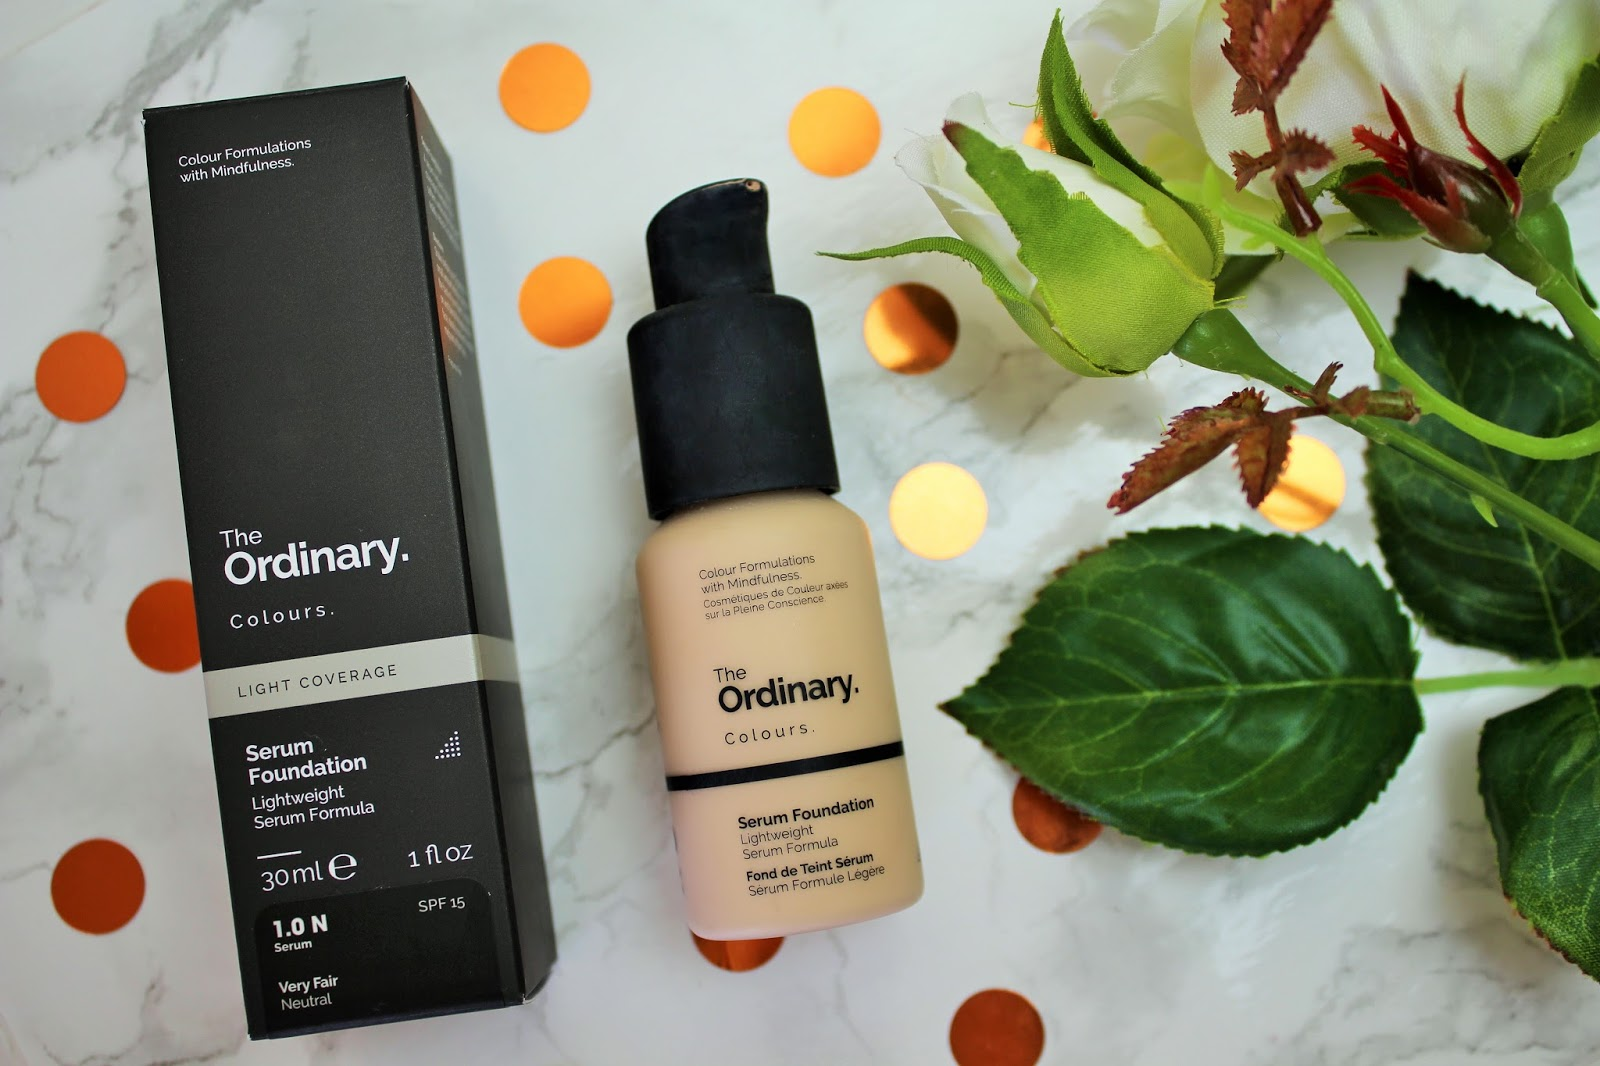 The Ordinary Serum Foundation Review - Does Your Skin Type Matter? - 3